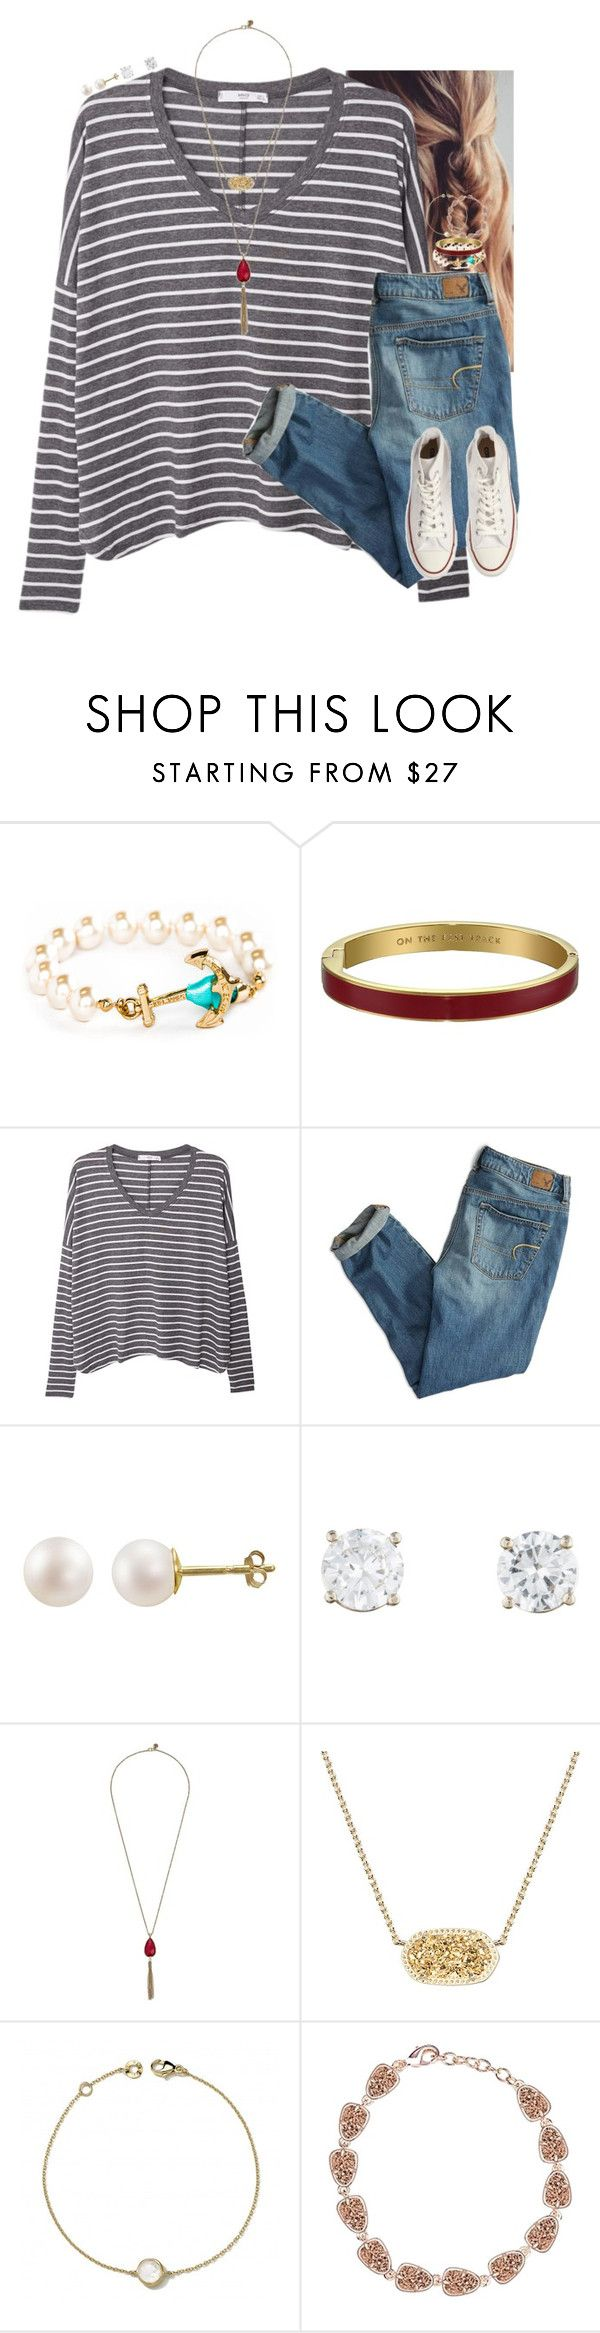 """""""Does It Get Weird At These Things? Define Weird."""" by cfc-prep-sc ❤ liked on Polyvore featuring Kate Spade, MANGO, American Eagle Outfitters, PearLustre by Imperial, The Sak, Kendra Scott, Ippolita and Converse"""